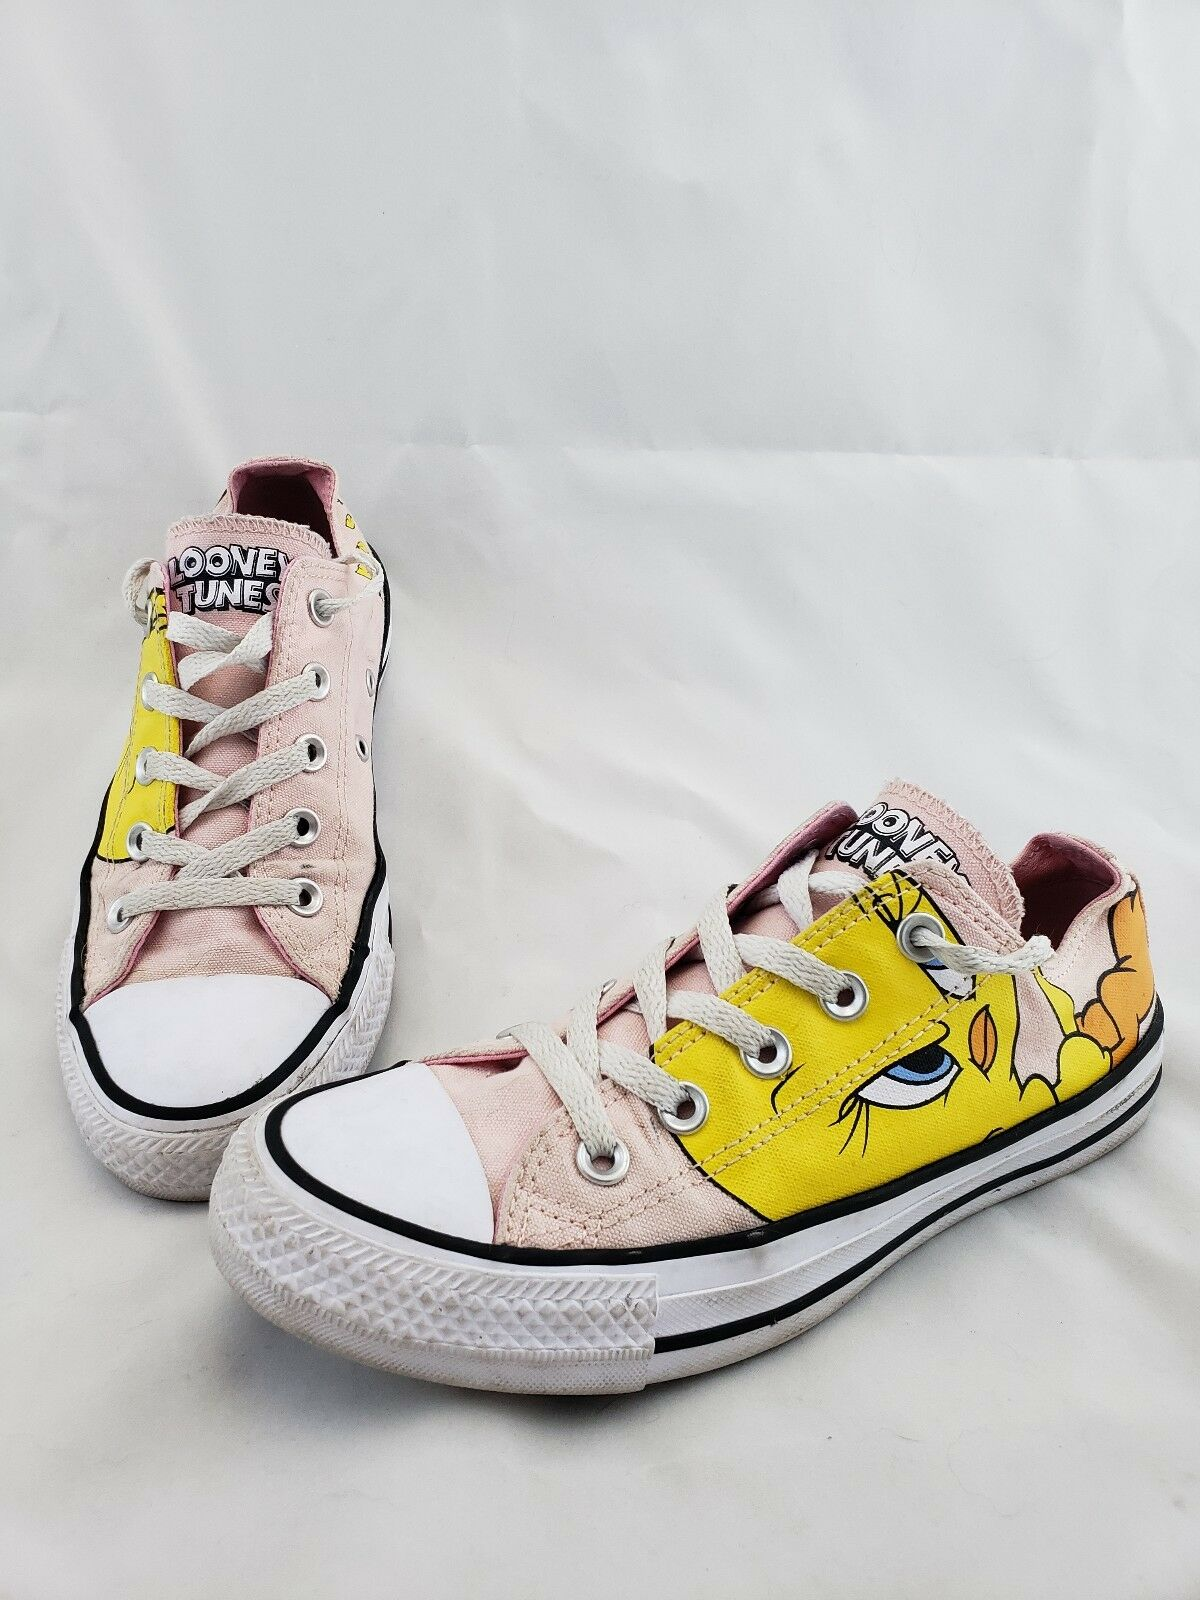 Converse All Star Tweety Bird Pink Sneakers shoes Men's Size 4 Women's 6